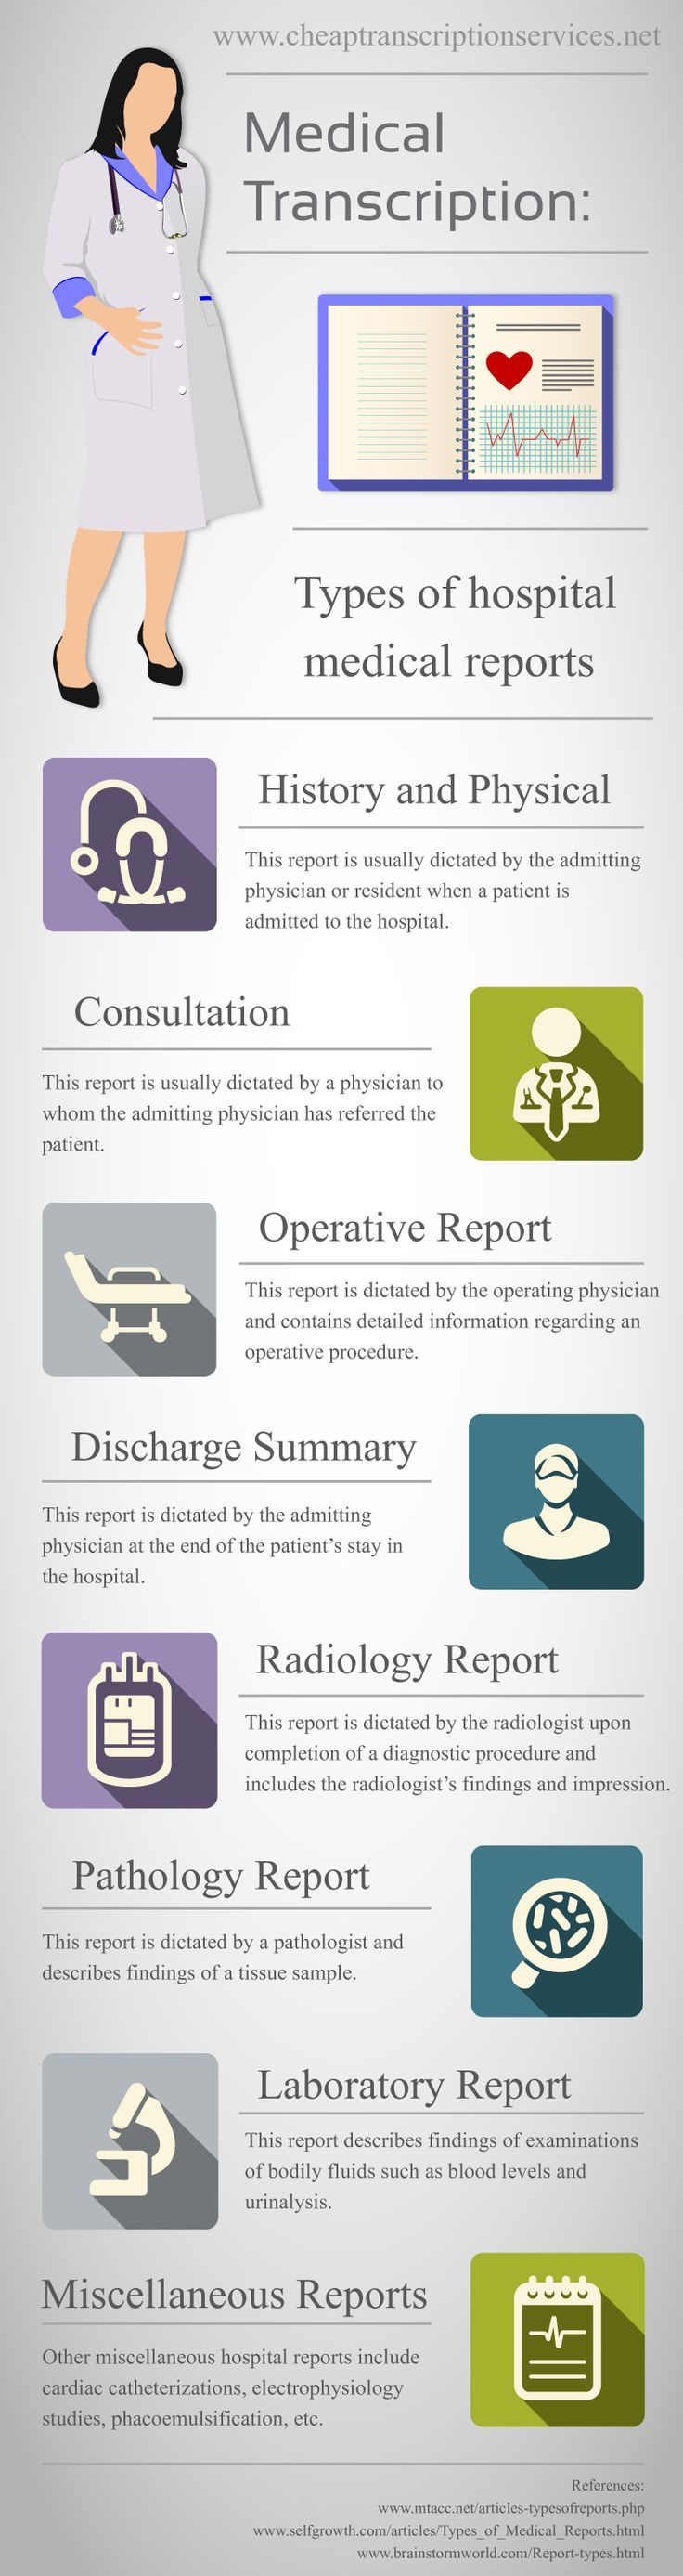 Medical Transcription: Types of Hospital Medical Reports